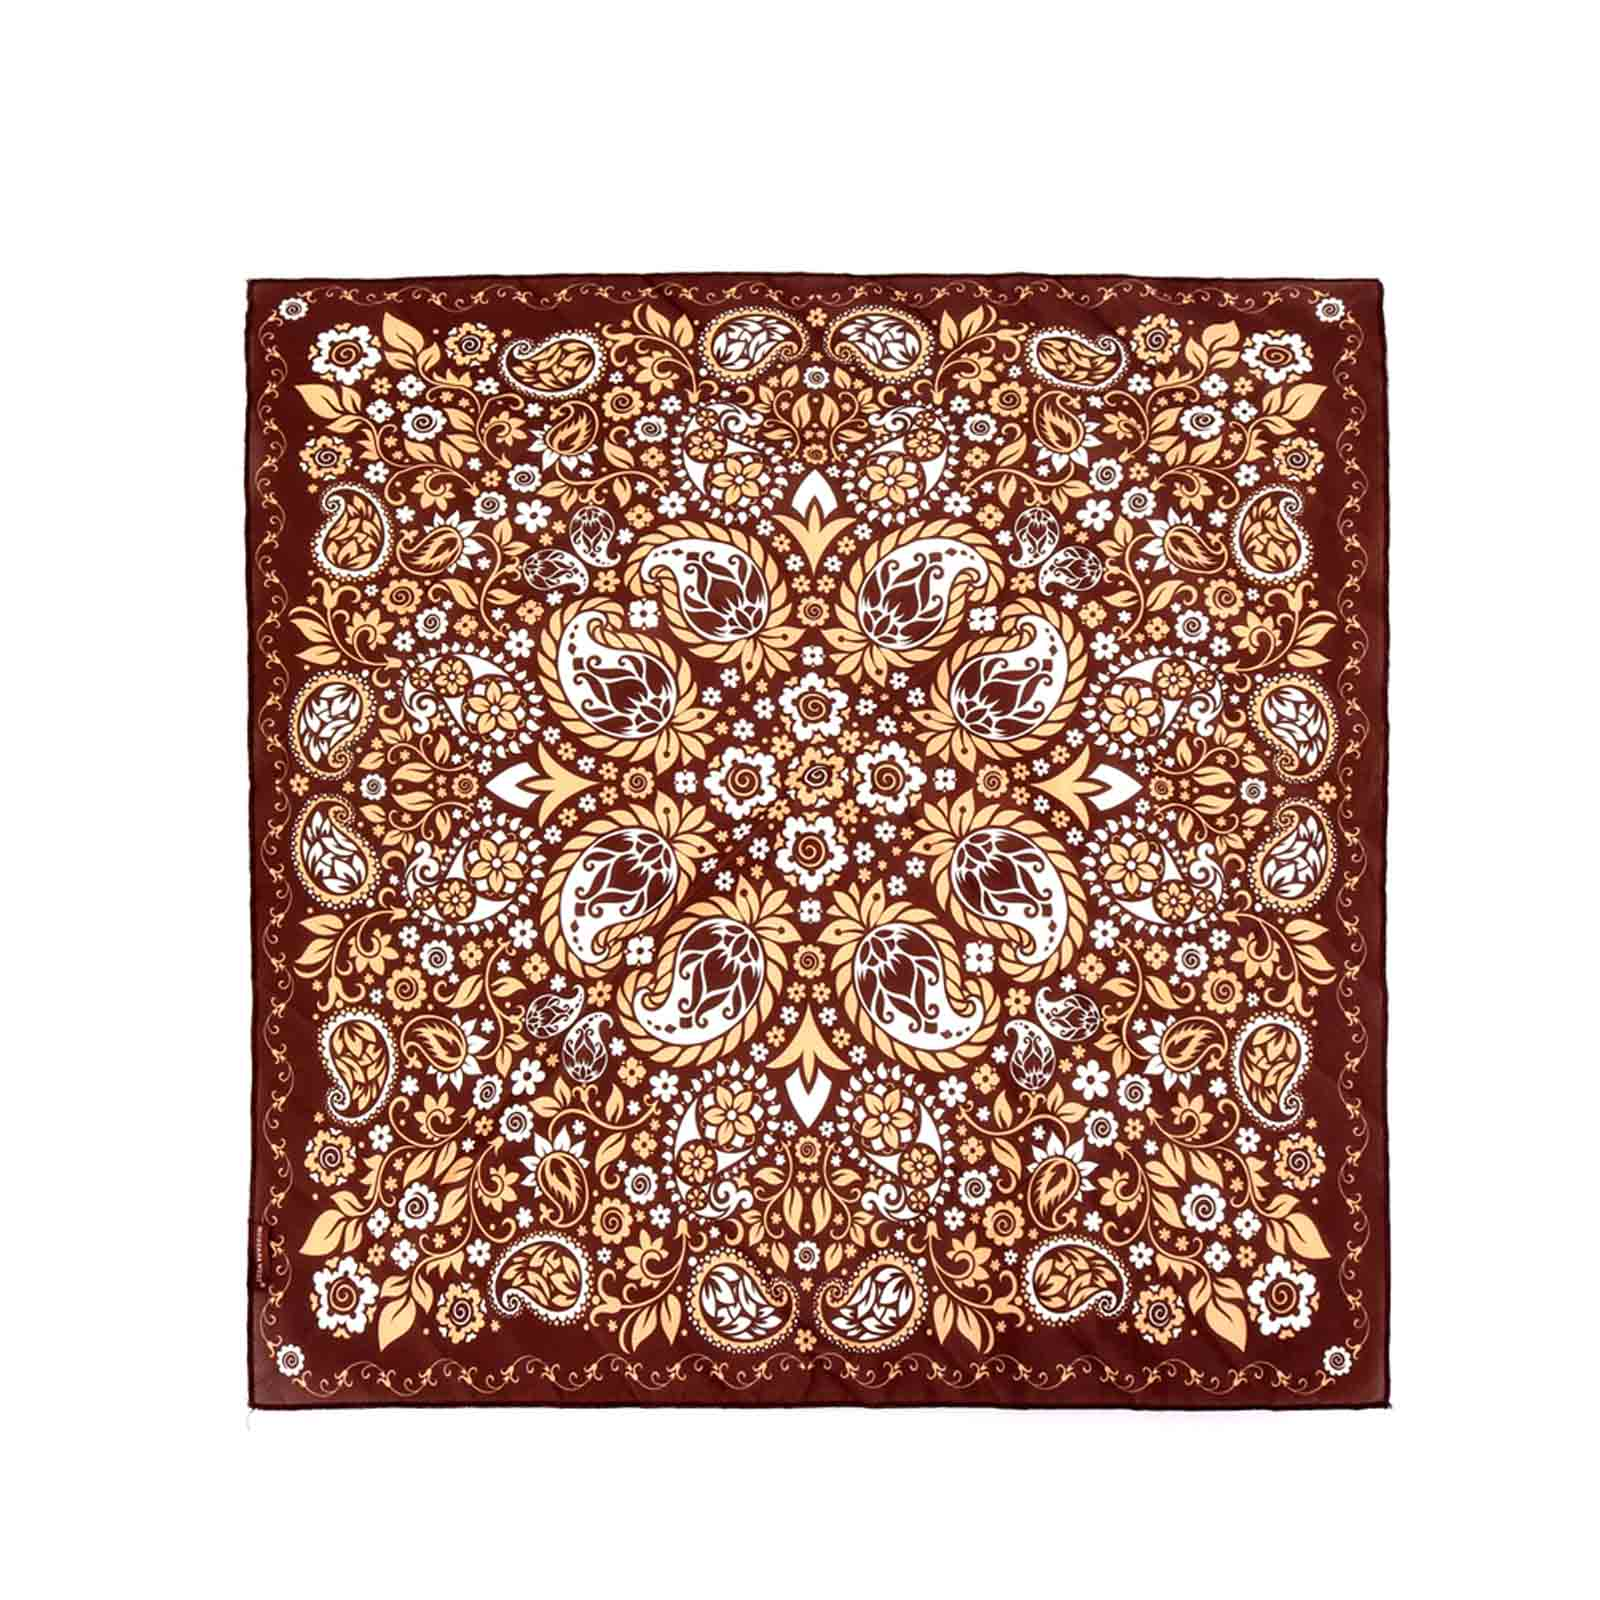 BDN08  American Bling Paisley Mandala Print Bandana - Assorted Colors (12 PCS)